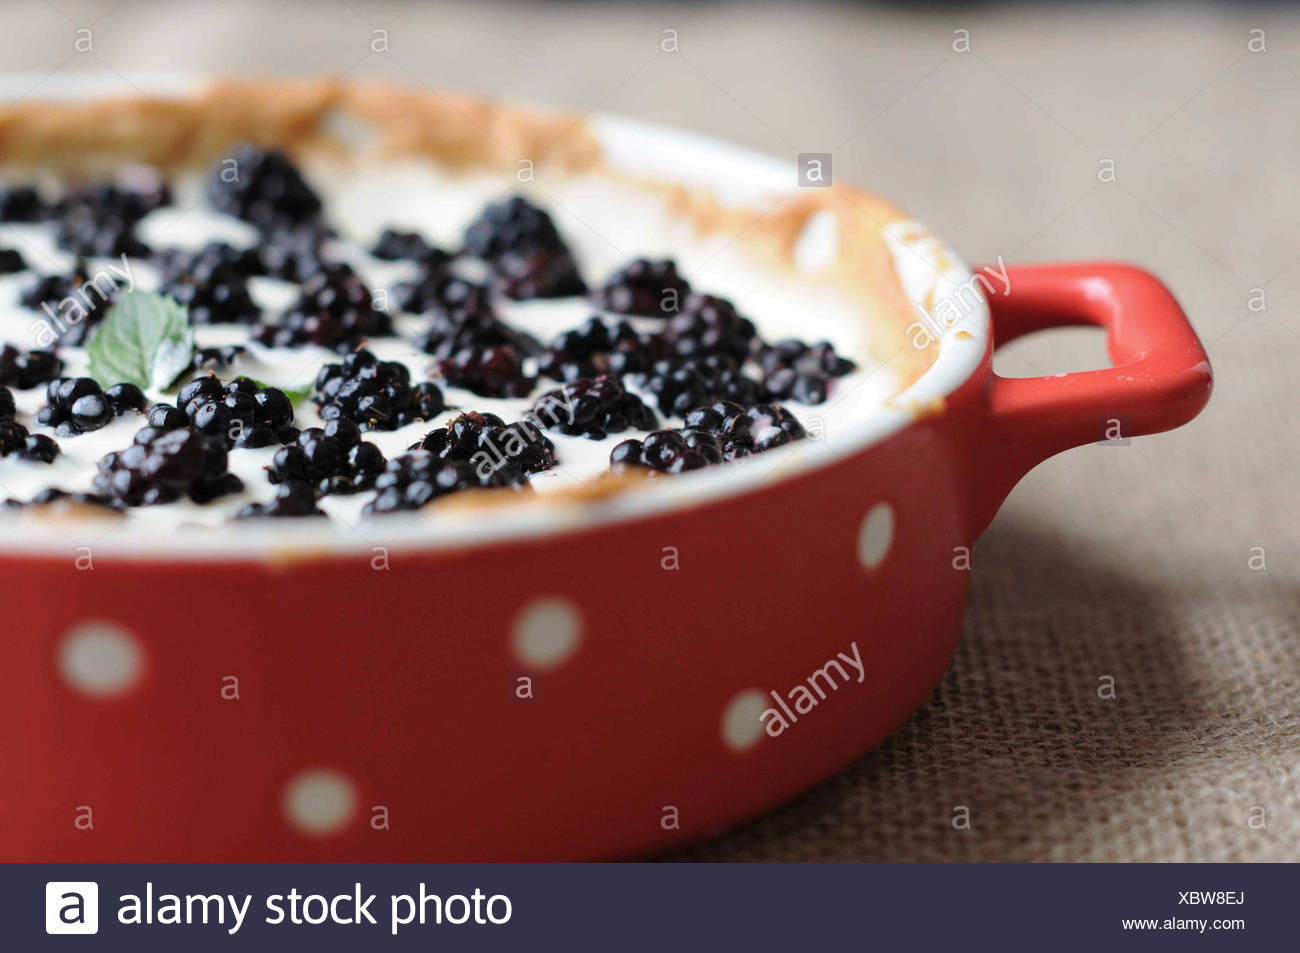 Blackberry tarte - Stock Image